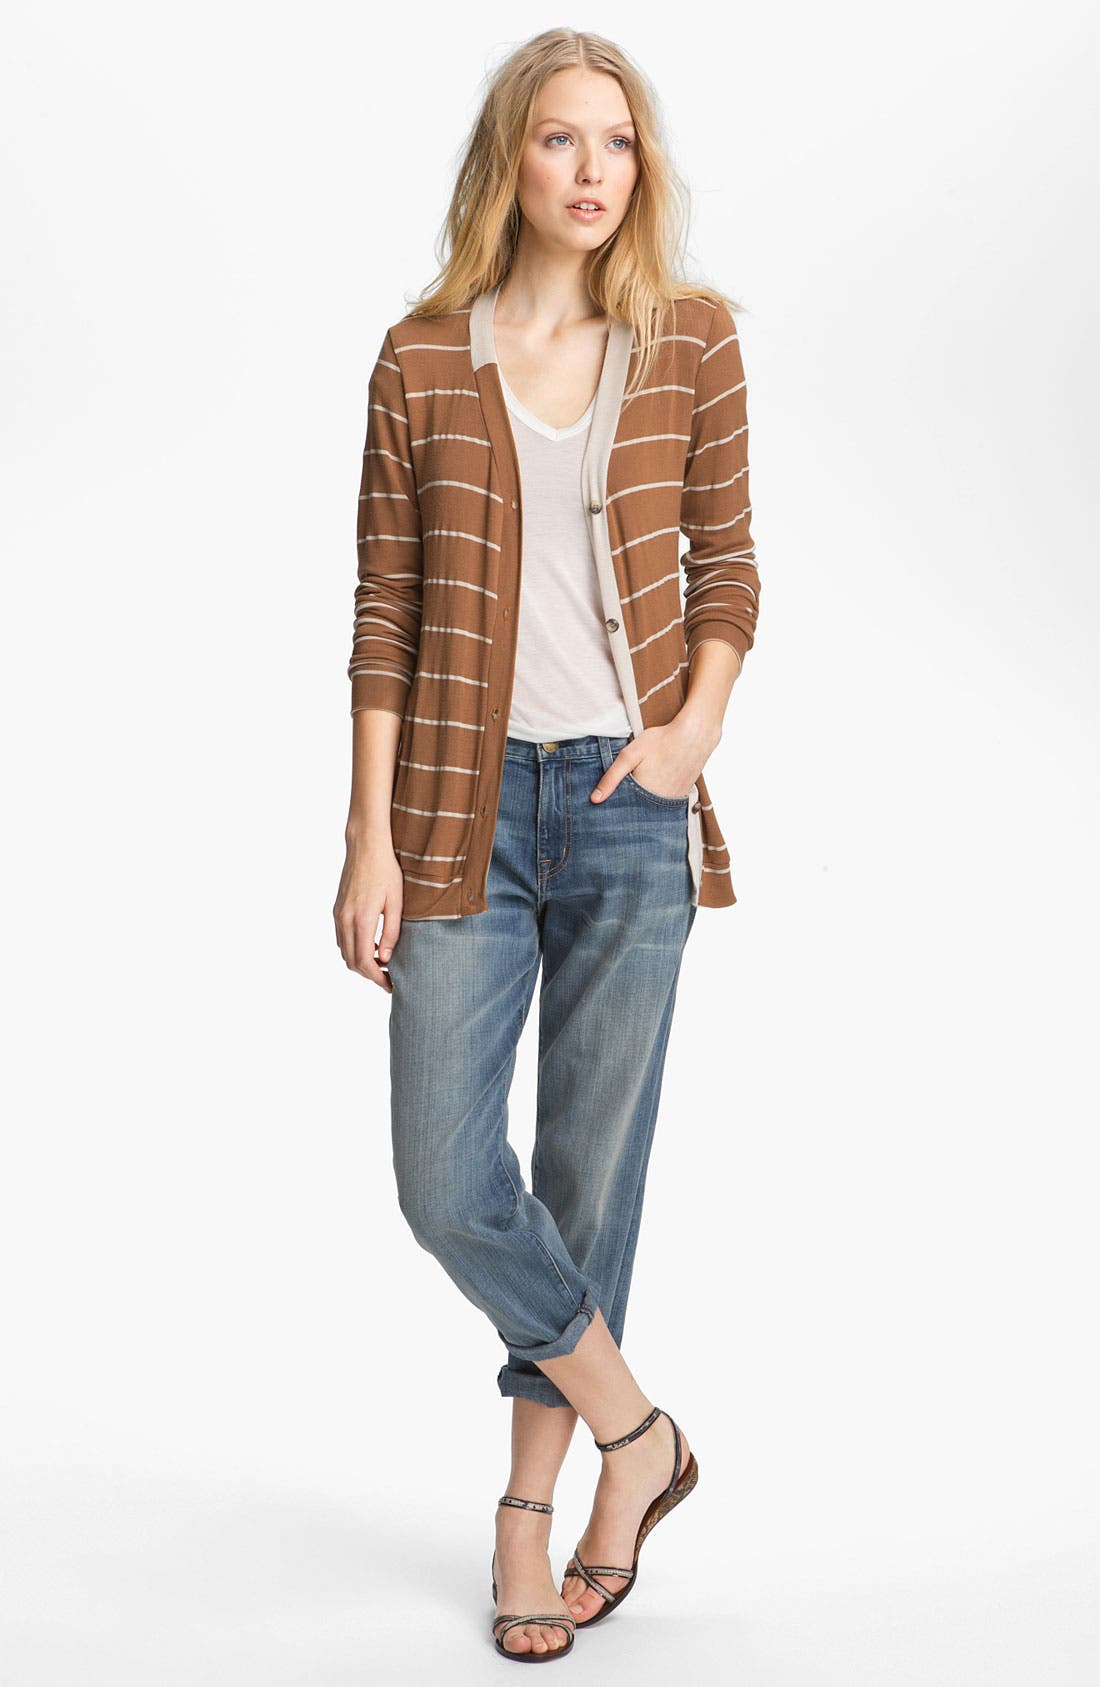 Alternate Image 1 Selected - Kain 'Joss' Stripe Boyfriend Cardigan